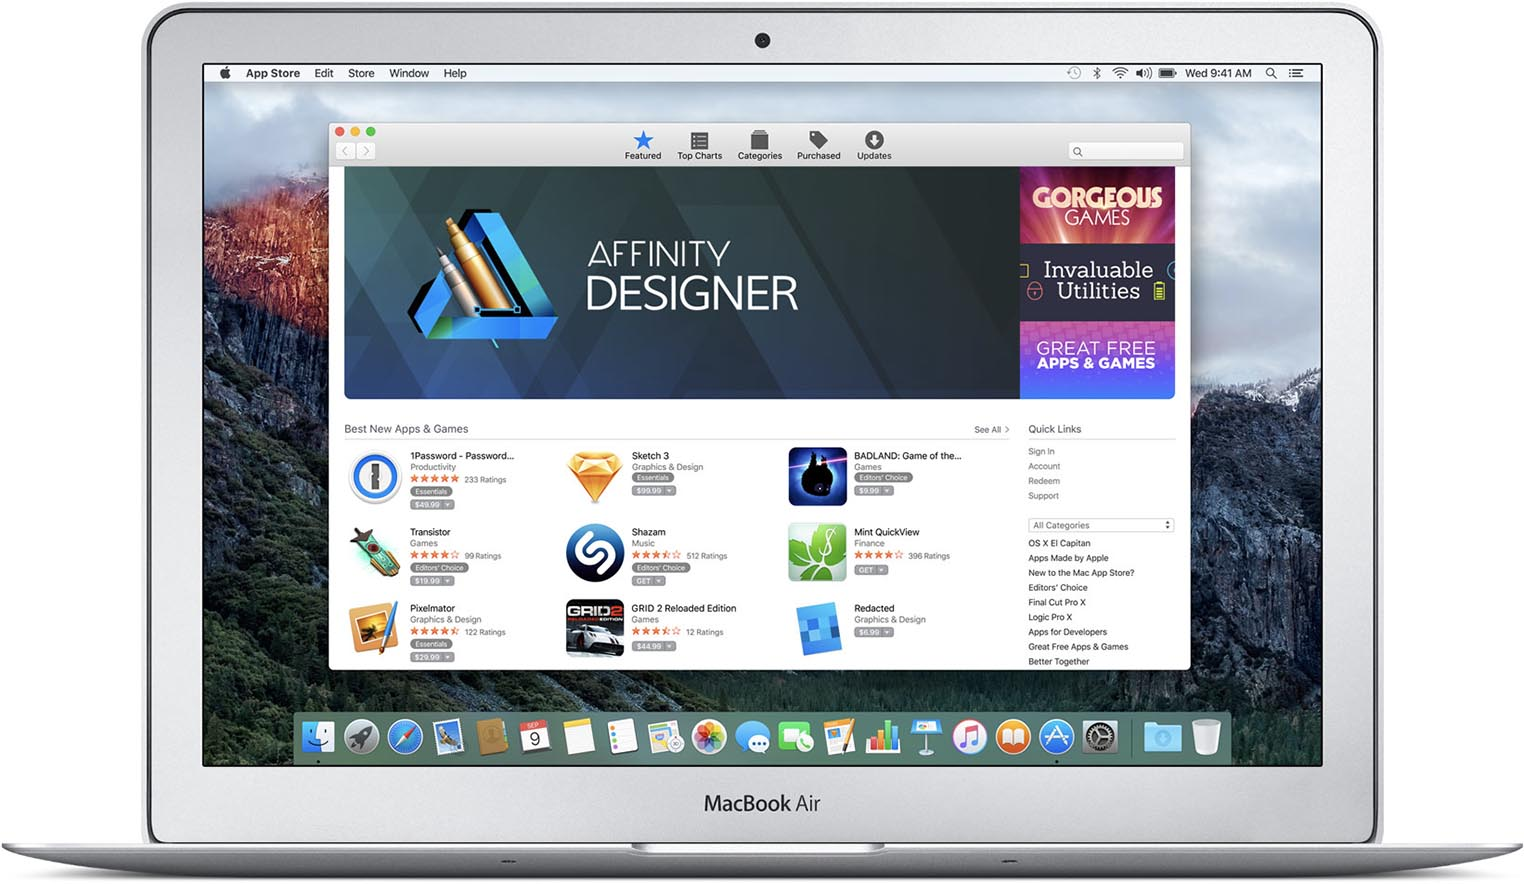 MacBook Air Mac App Store